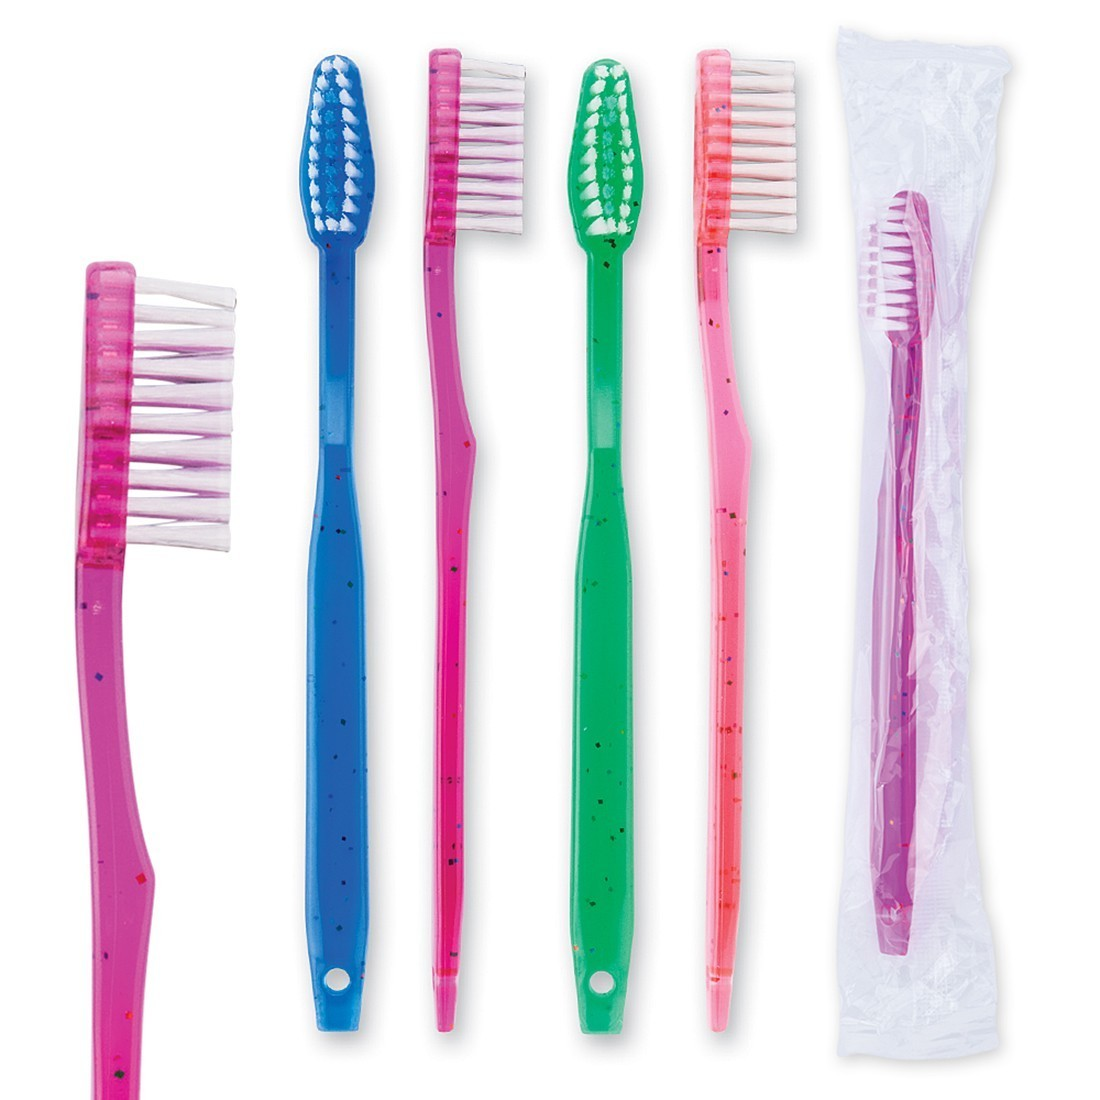 OraLine Pre-Teen Sparkle Toothbrushes [image]